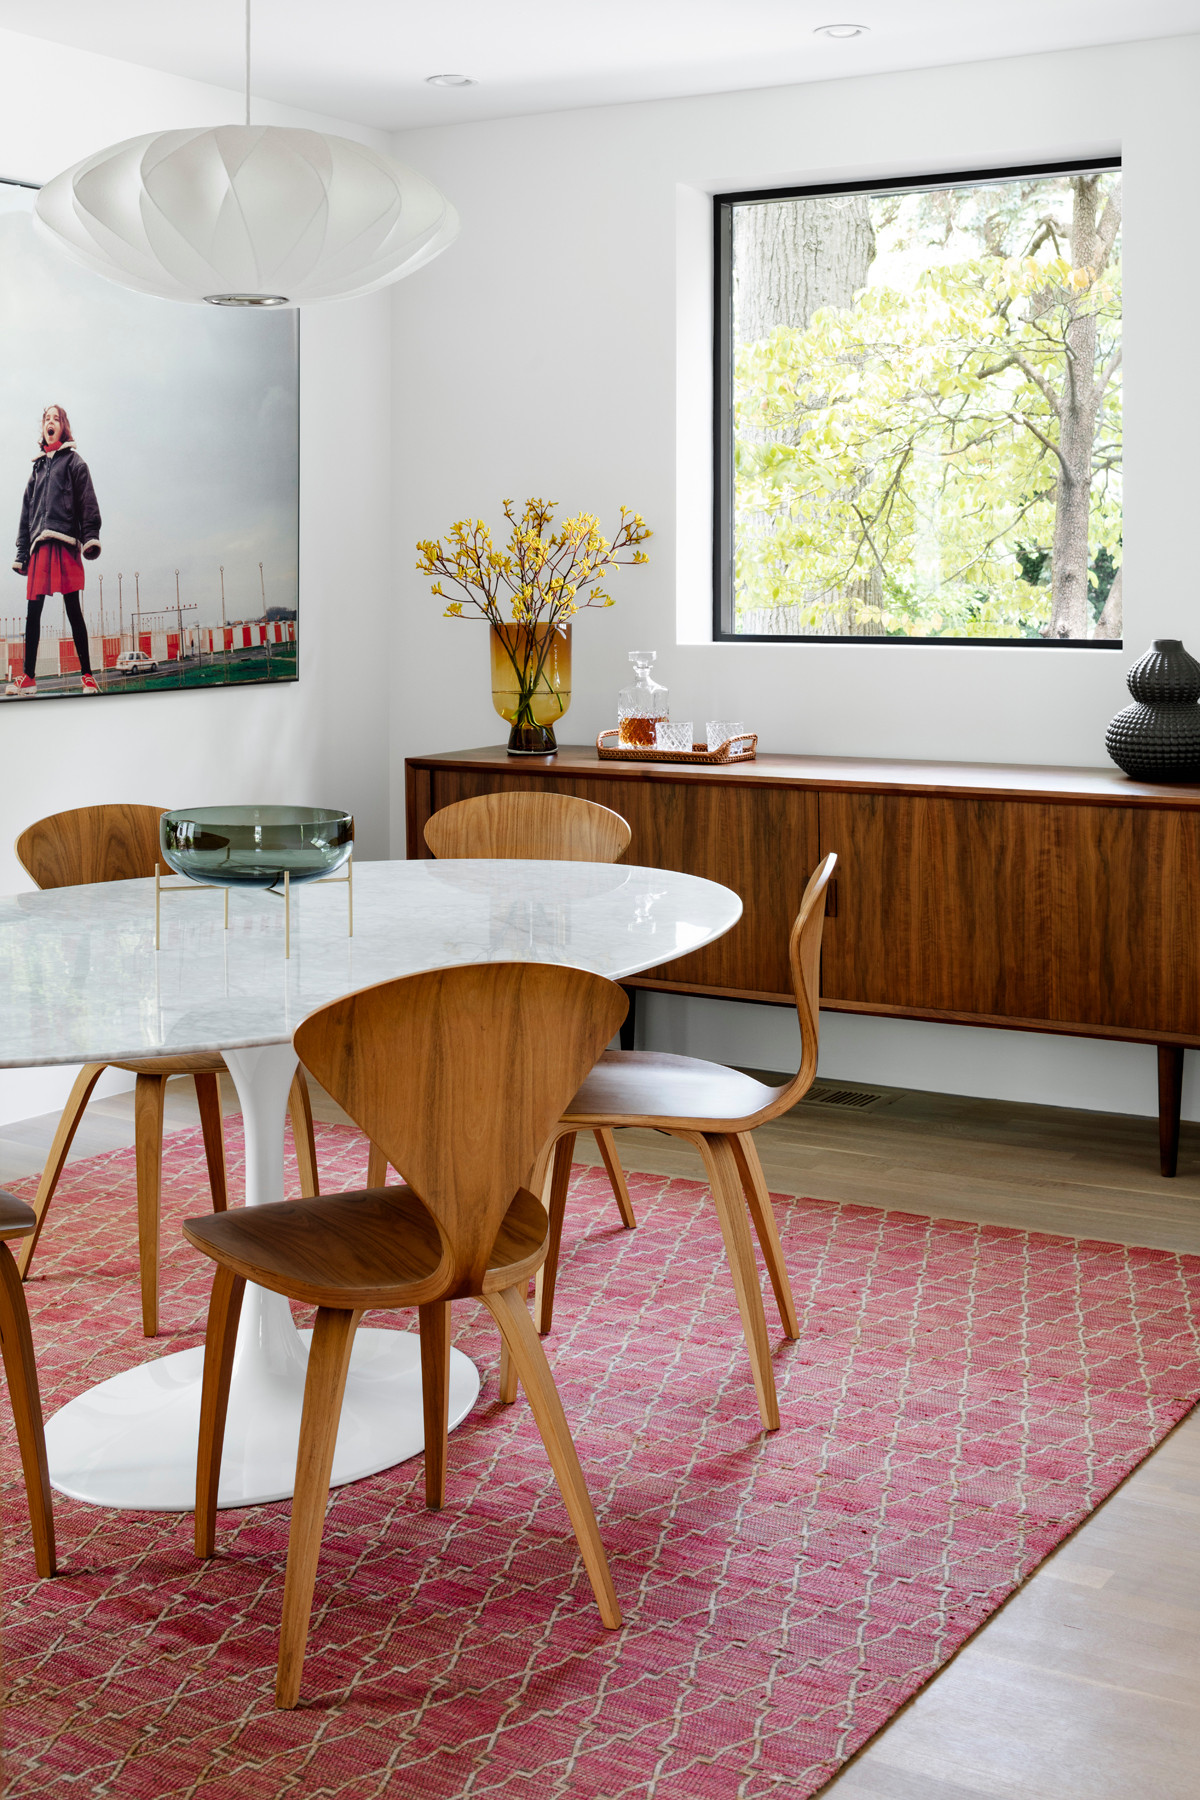 Adapting-a-mid-century-modern-style-allows-you-to-try-out-iconic-decor-pieces-like-the-curvy-Cherner-chair-45781